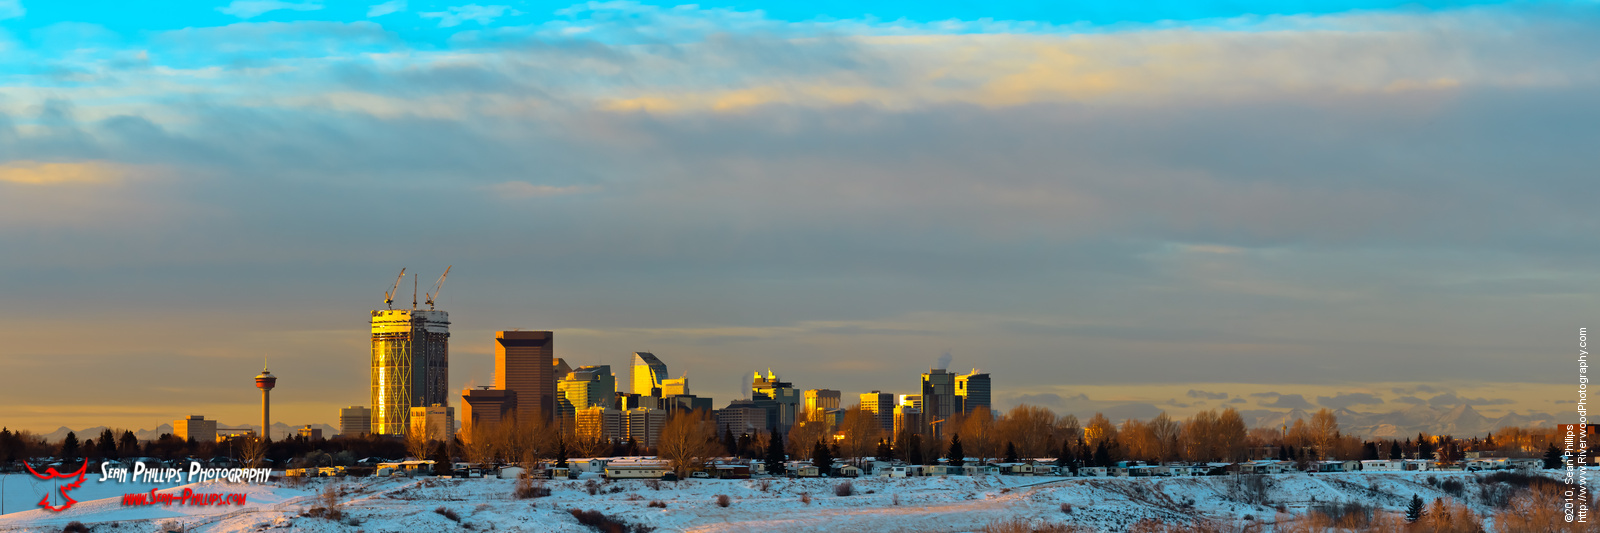 Dramatic skies over the Calgary cityscape in the morning. Including the new Bow building towering over the buildings around it...&Acirc;&copy;2010, Sean Phillips.http://www.RiverwoodPhotography.com (Sean Phillips)